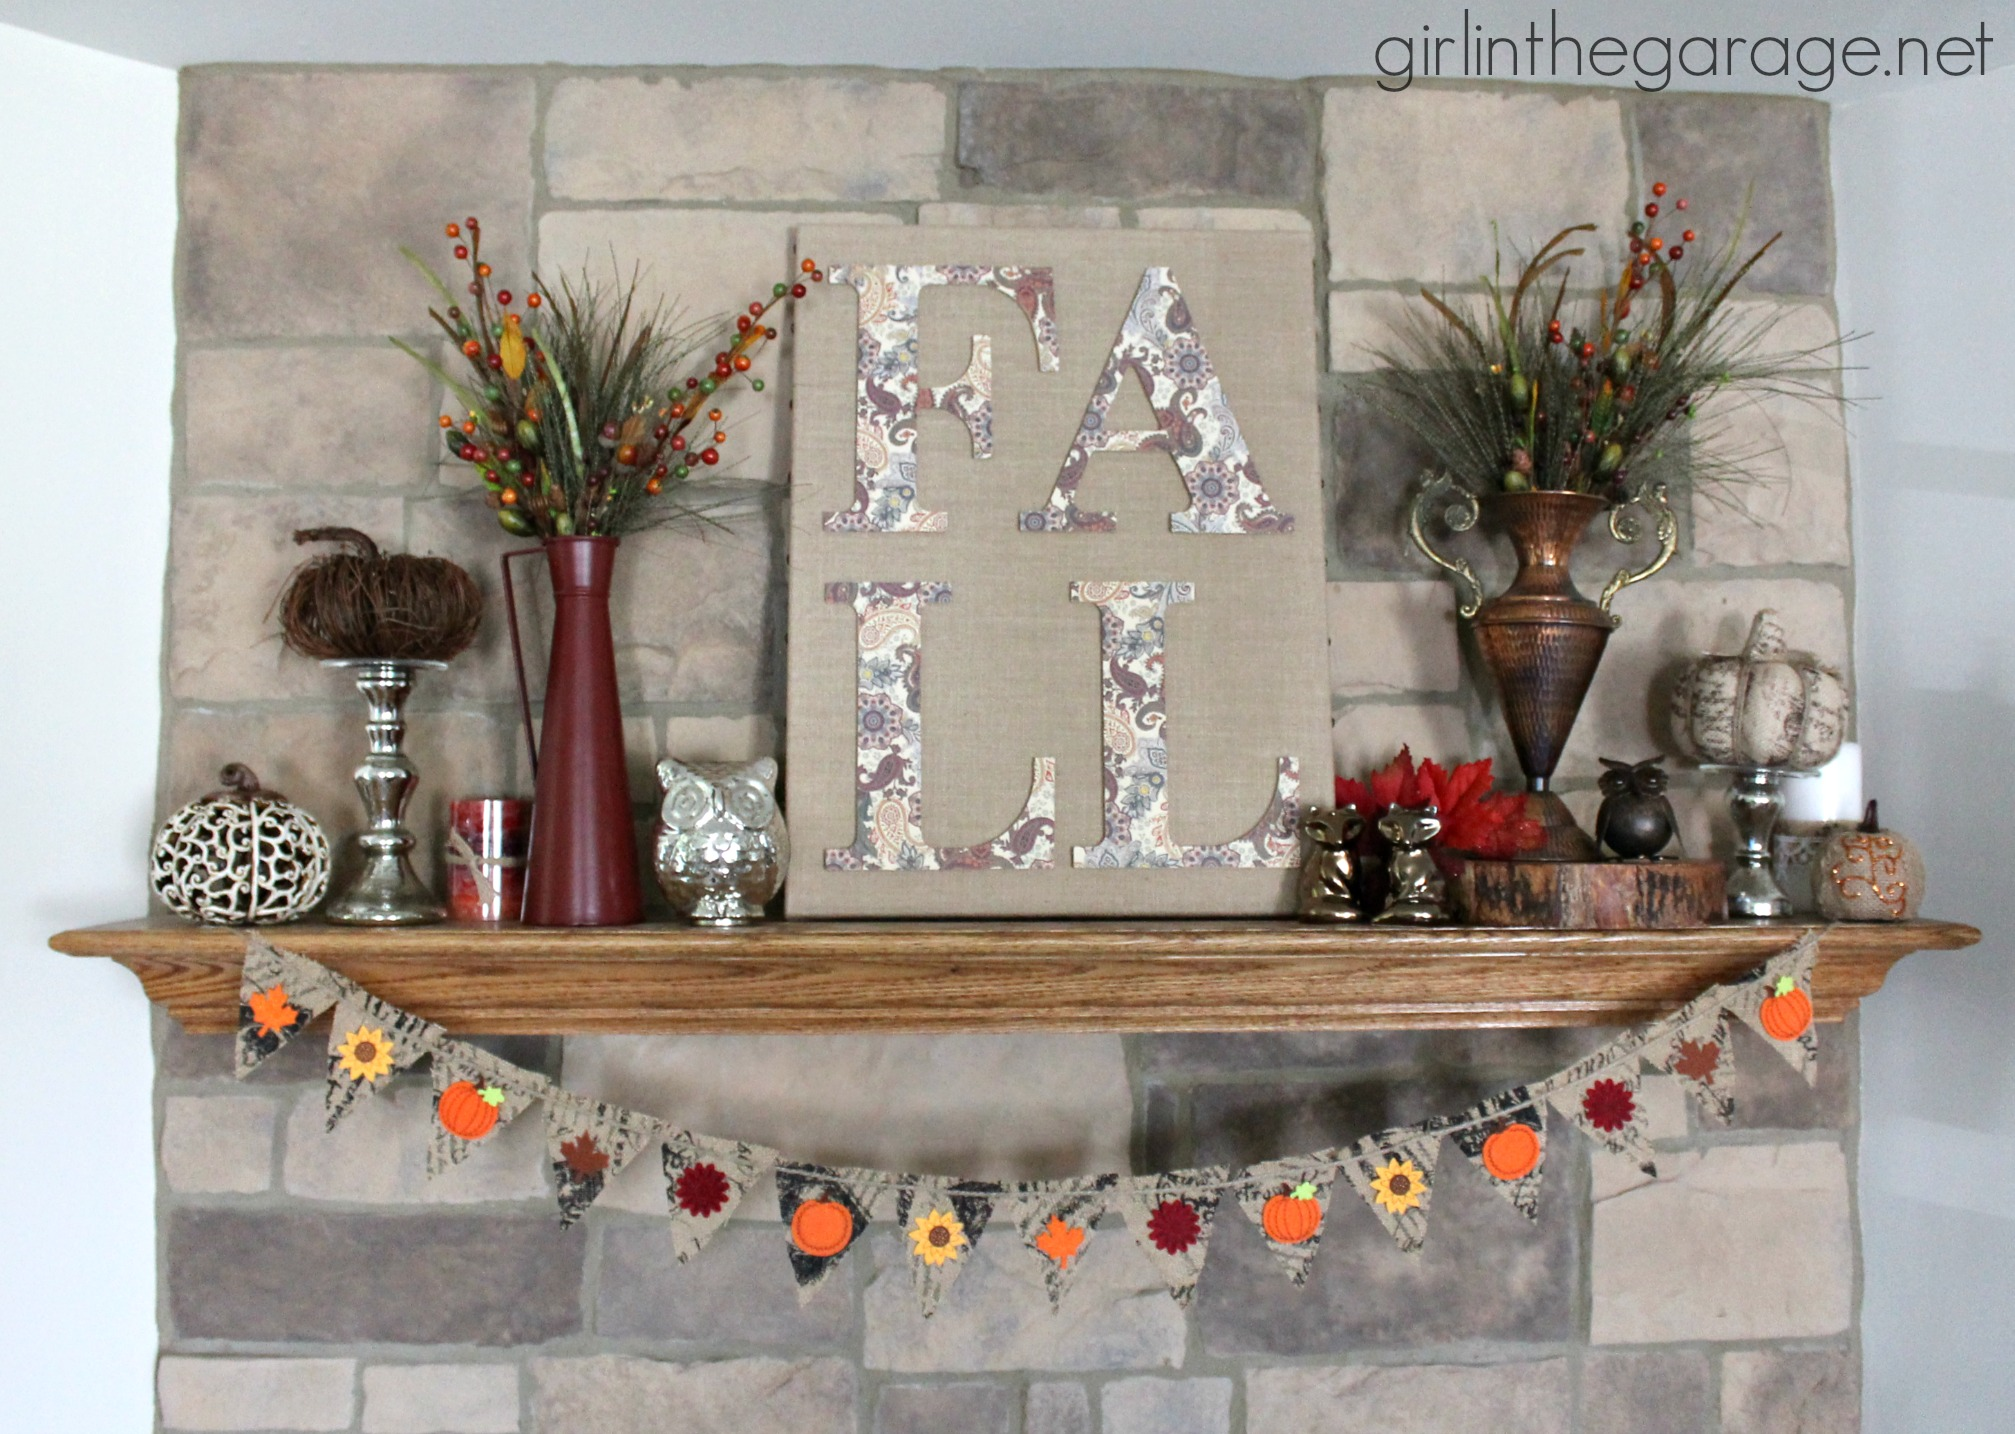 Decorating With Burlap Fall Burlap Art And Mantel Fall Home Decor Tour Girl In The